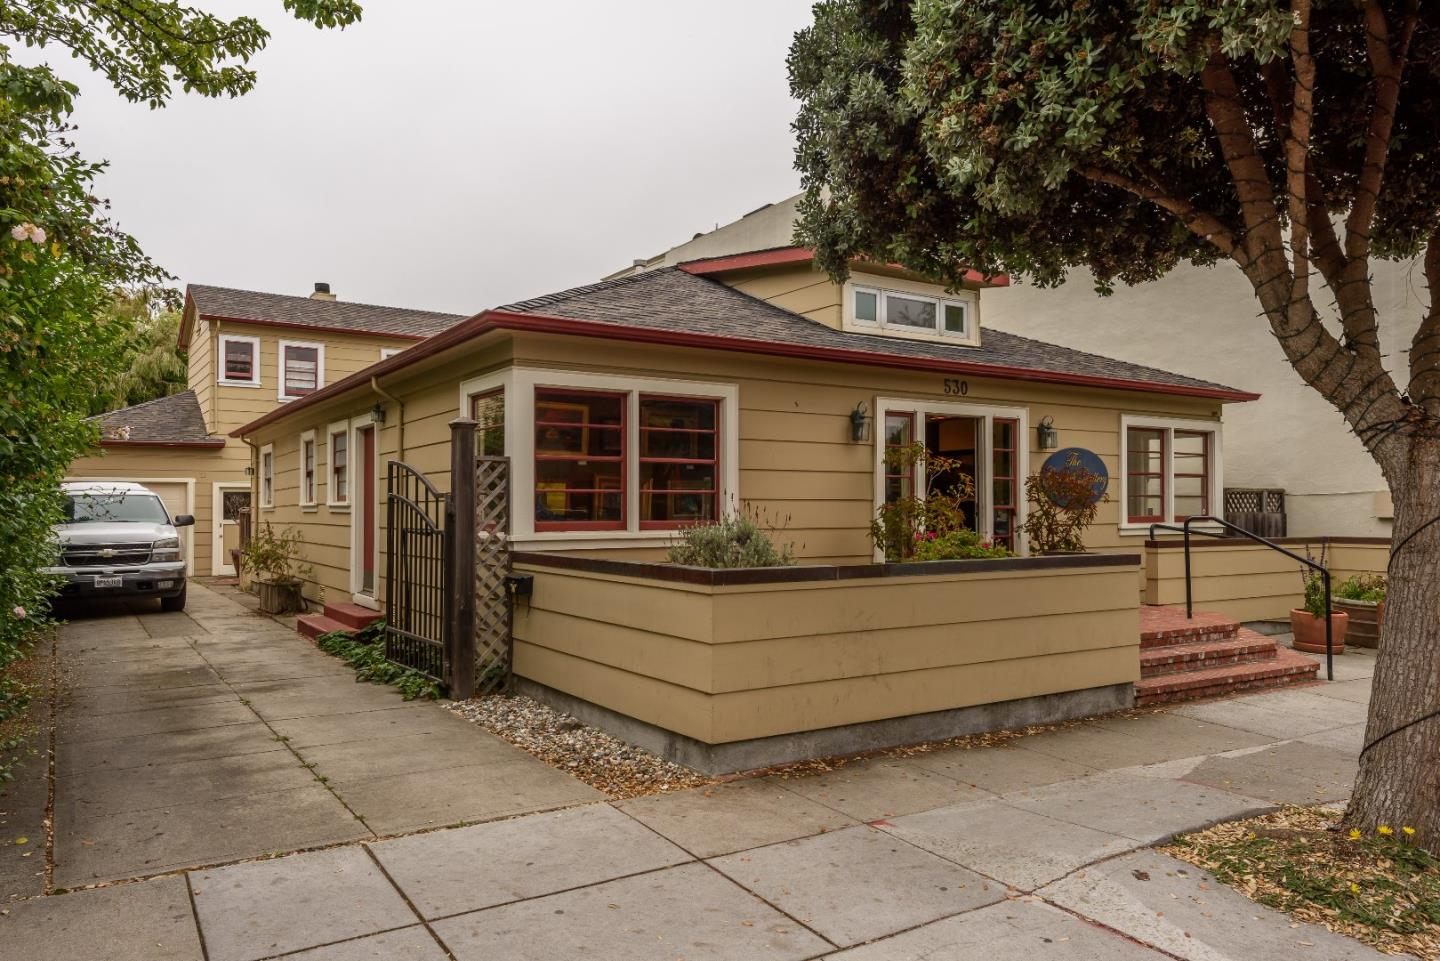 Single Family Home for Sale at 530 Main Street 530 Main Street Half Moon Bay, California 94019 United States